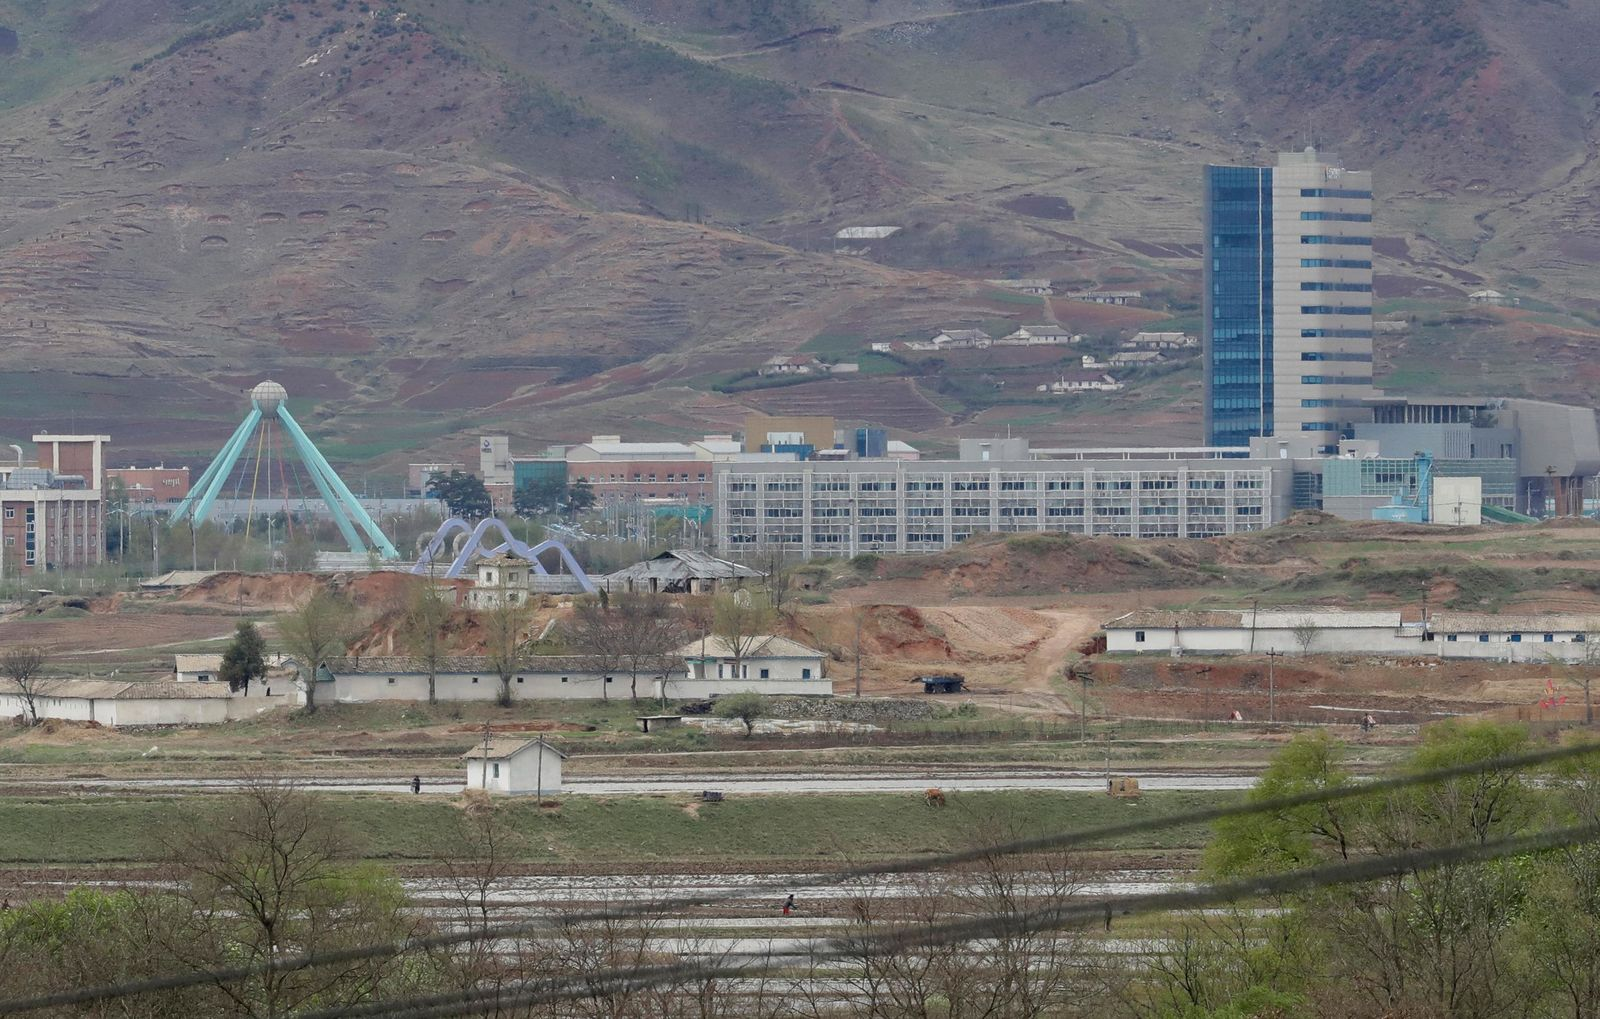 FILE - In this April 24, 2018, file photo, the Kaesong industrial complex in North Korea is seen from the Taesungdong freedom village inside the demilitarized zone during a press tour in Paju, South Korea. (AP Photo/Lee Jin-man, File)